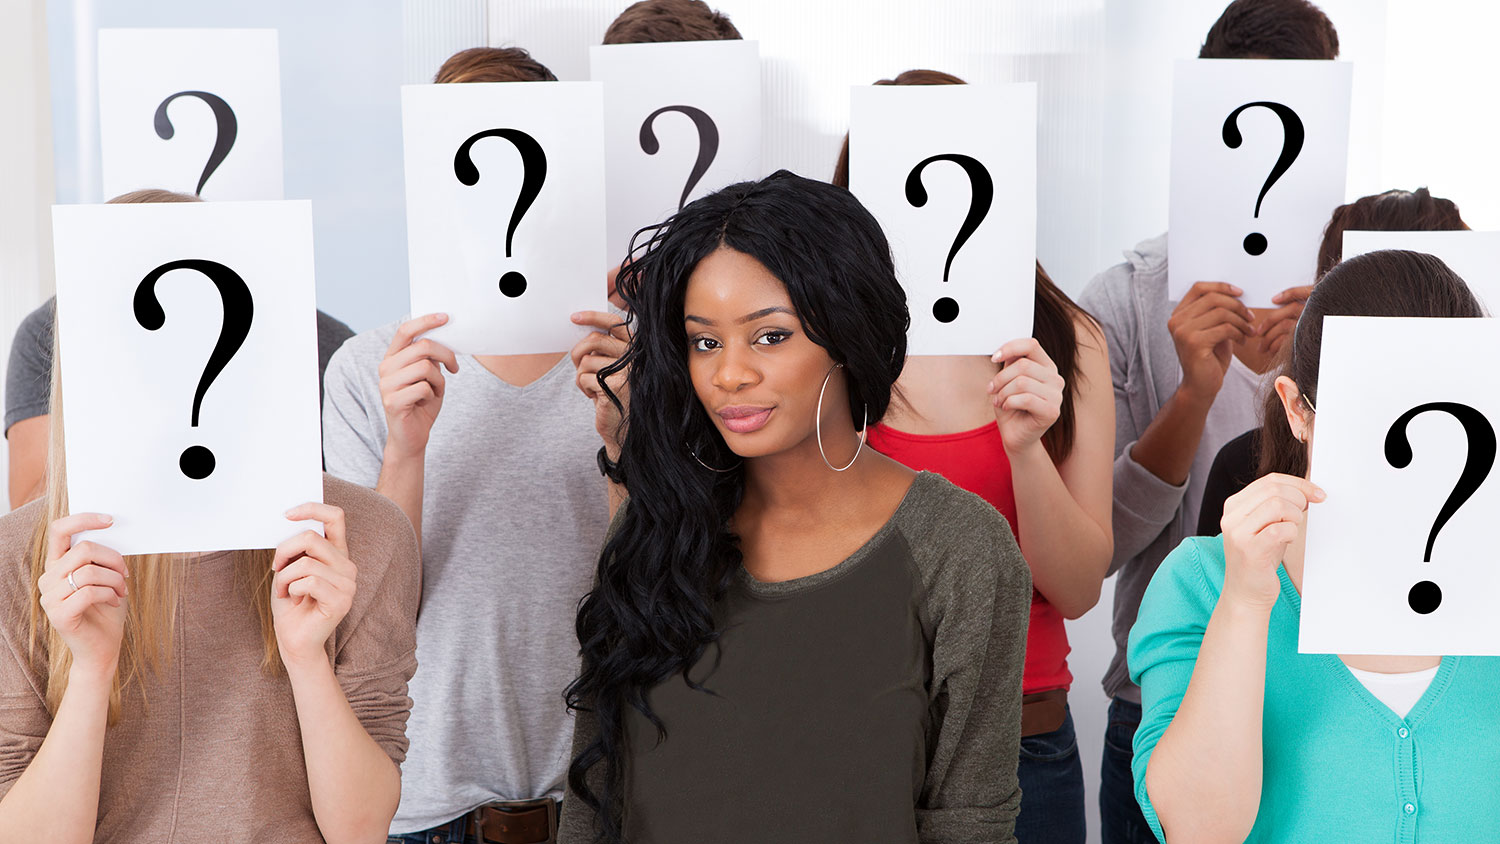 Young Black woman surrounded by White people with question mark signs over their faces